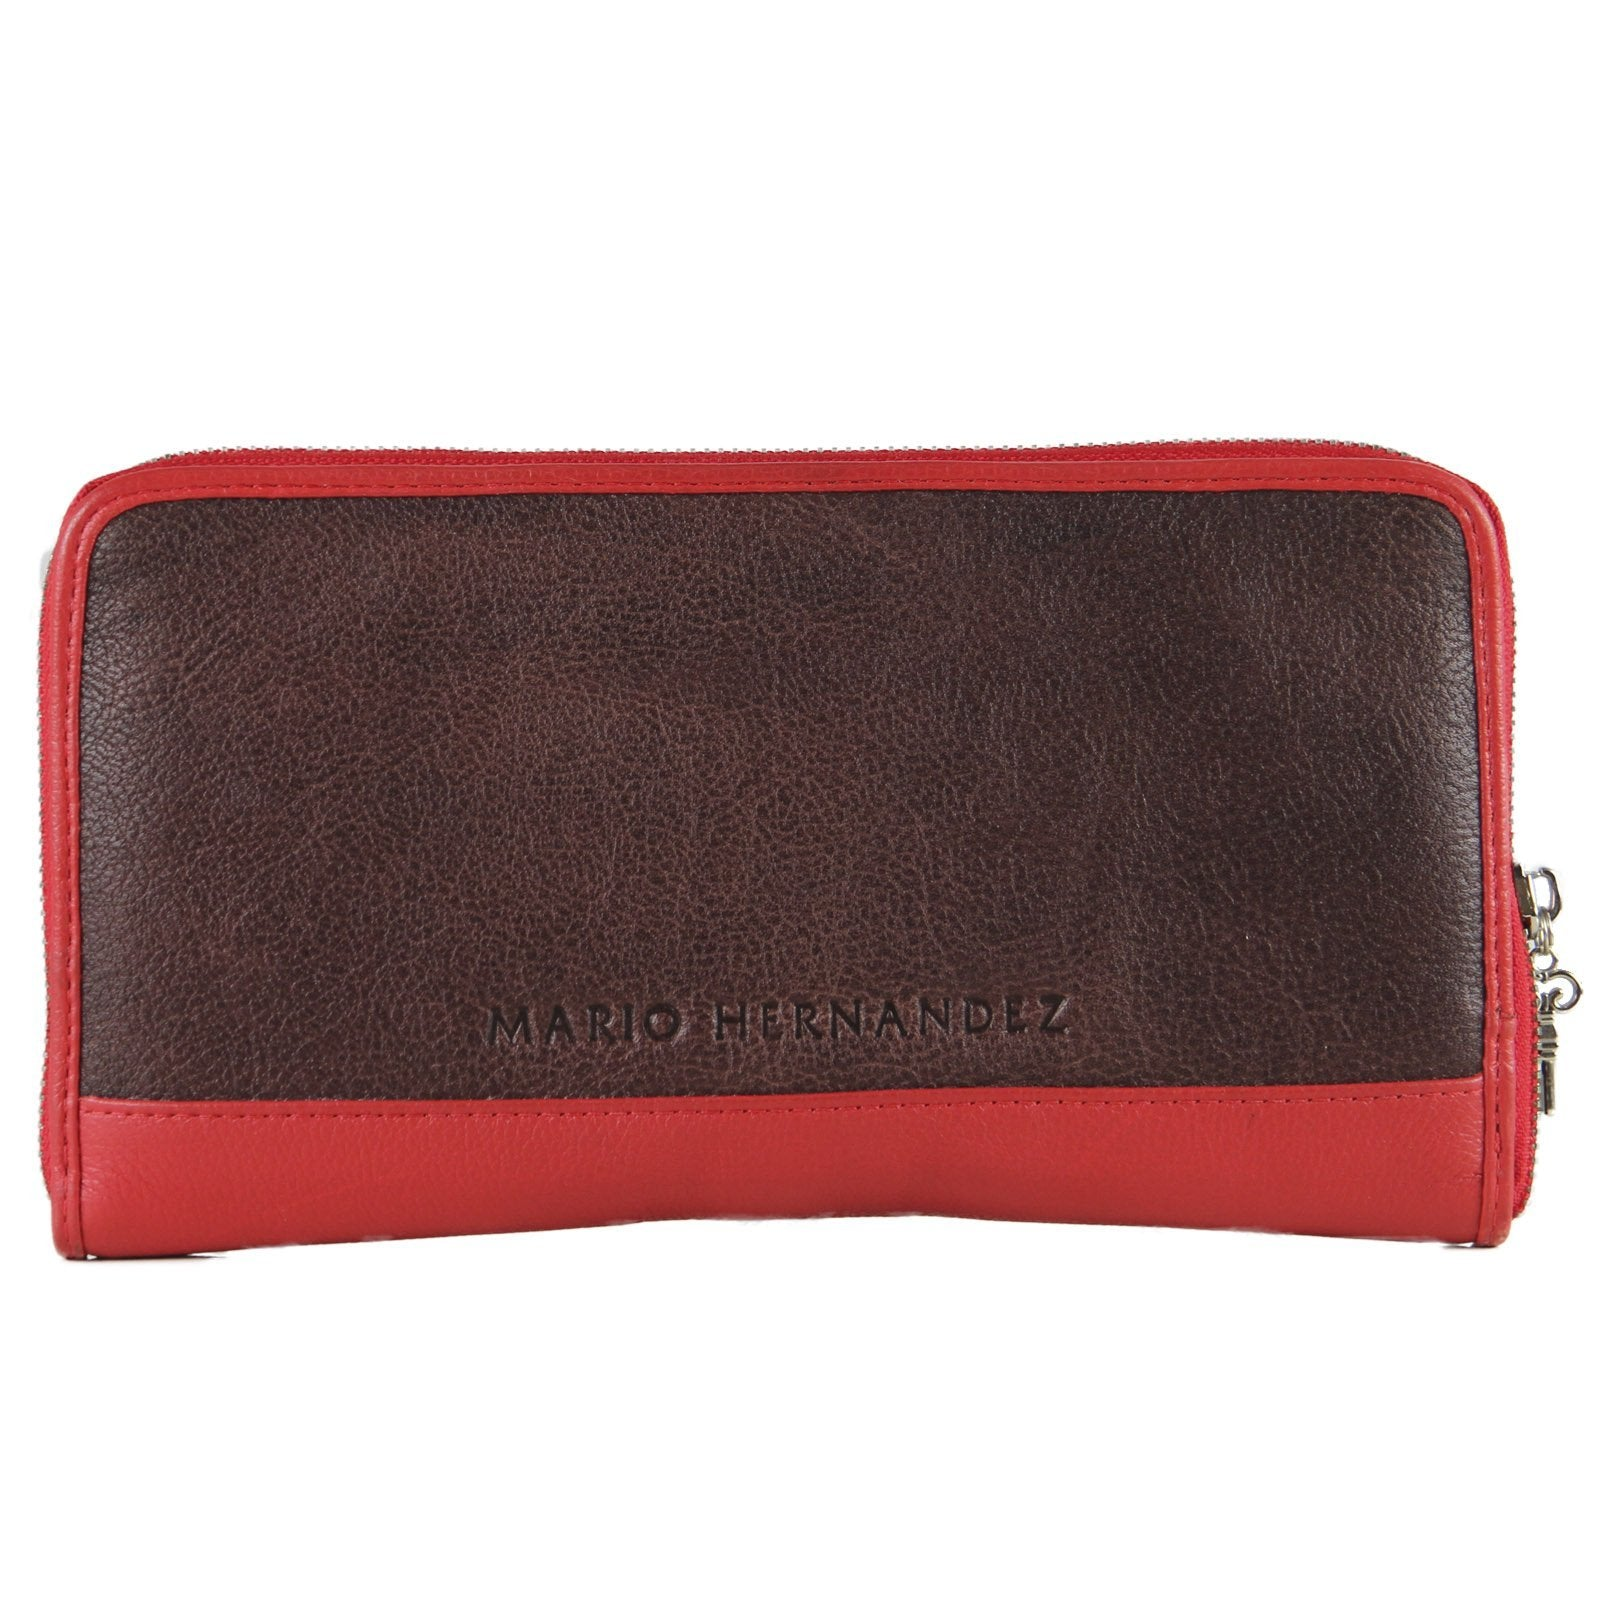 handbag Women's Wallet